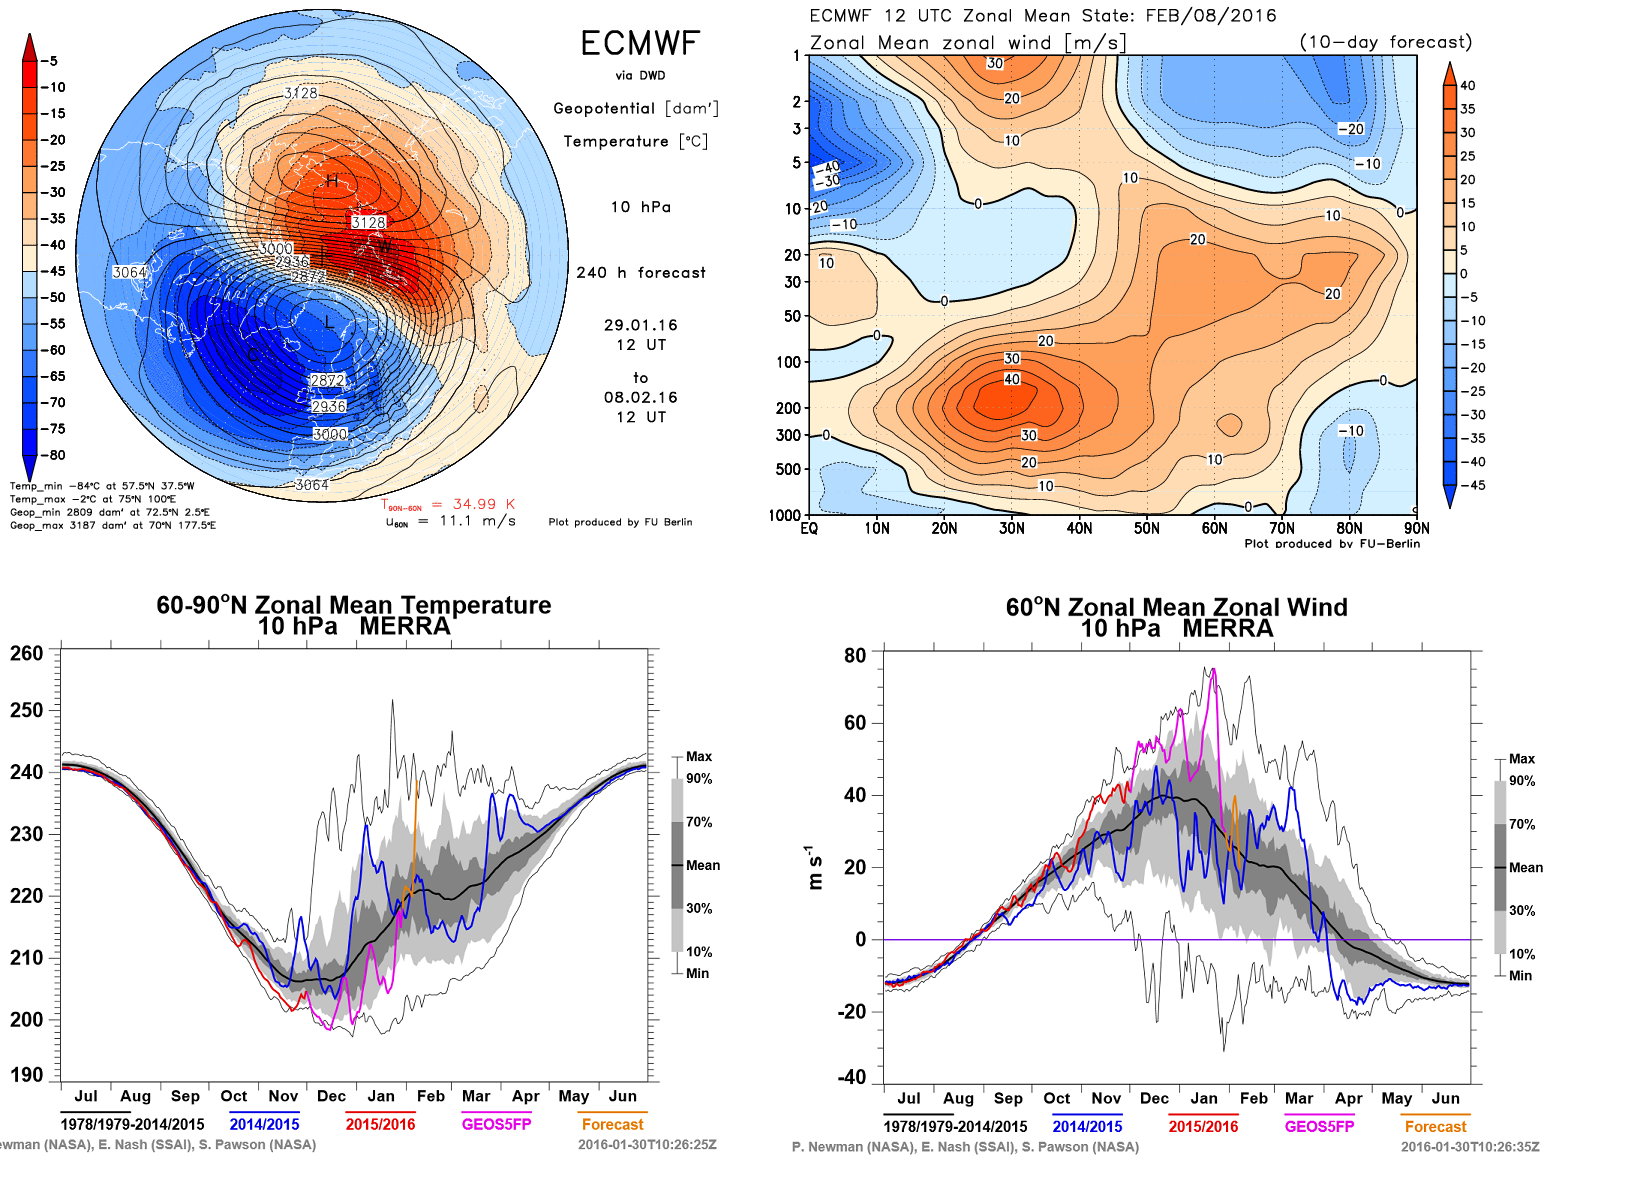 ECMWF & NASA models showing the beginning of a Sudden Stratospheric Warming event at 10 hPA on Feb 8th. Zonal winds decreasing or reversing in the higher latitudes.